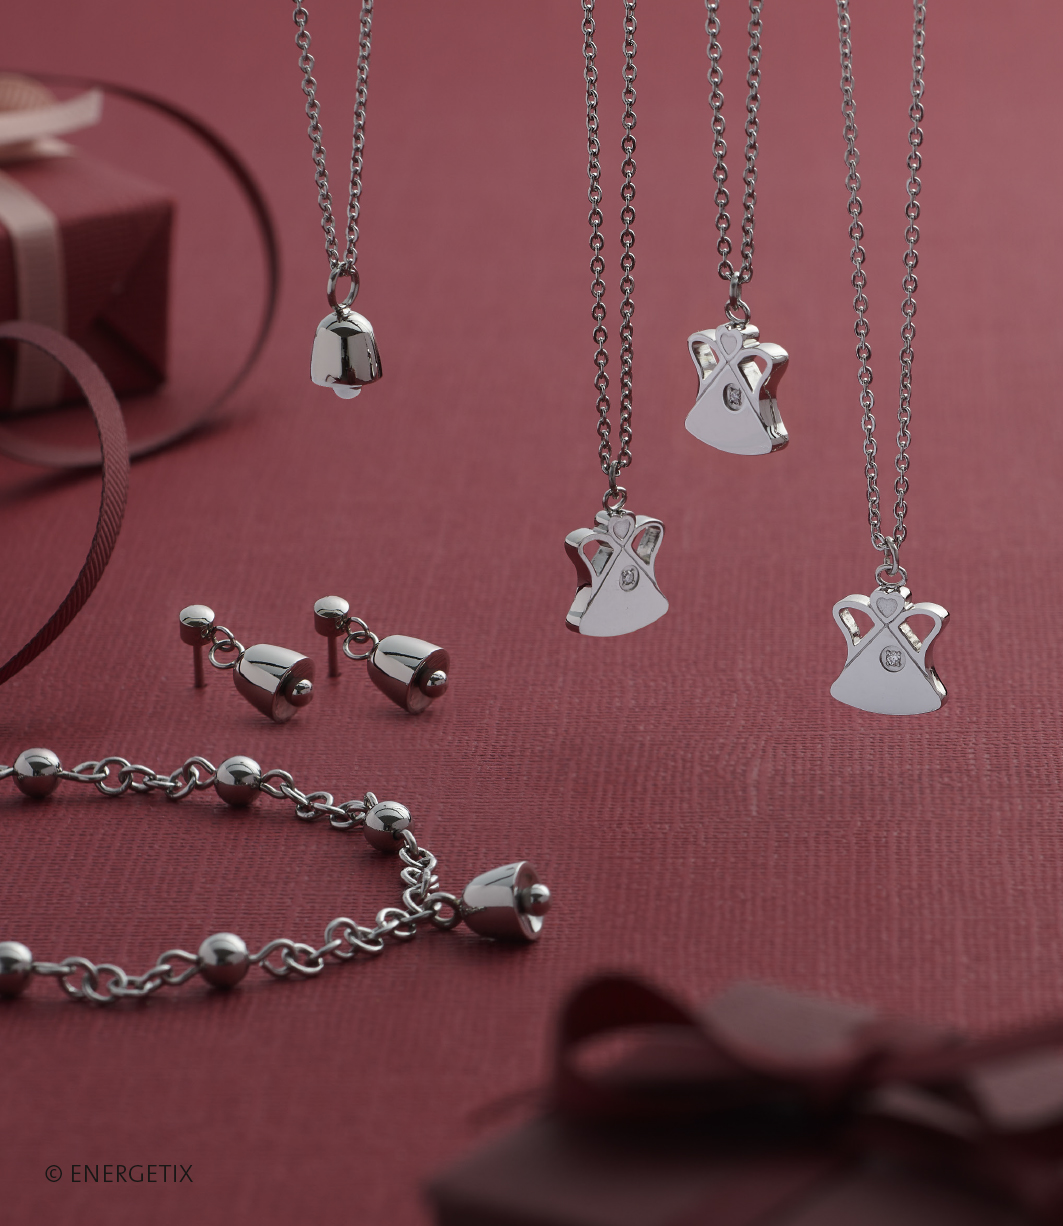 Stainless steel magnetic bracelet with bell shaped charm, next two two bell shaped ear droppers in matching steel colour. Above which hangs a bell shaped pendant on silver colour chain, and three angel pendants with a small diamond over their heart, hanging on chains